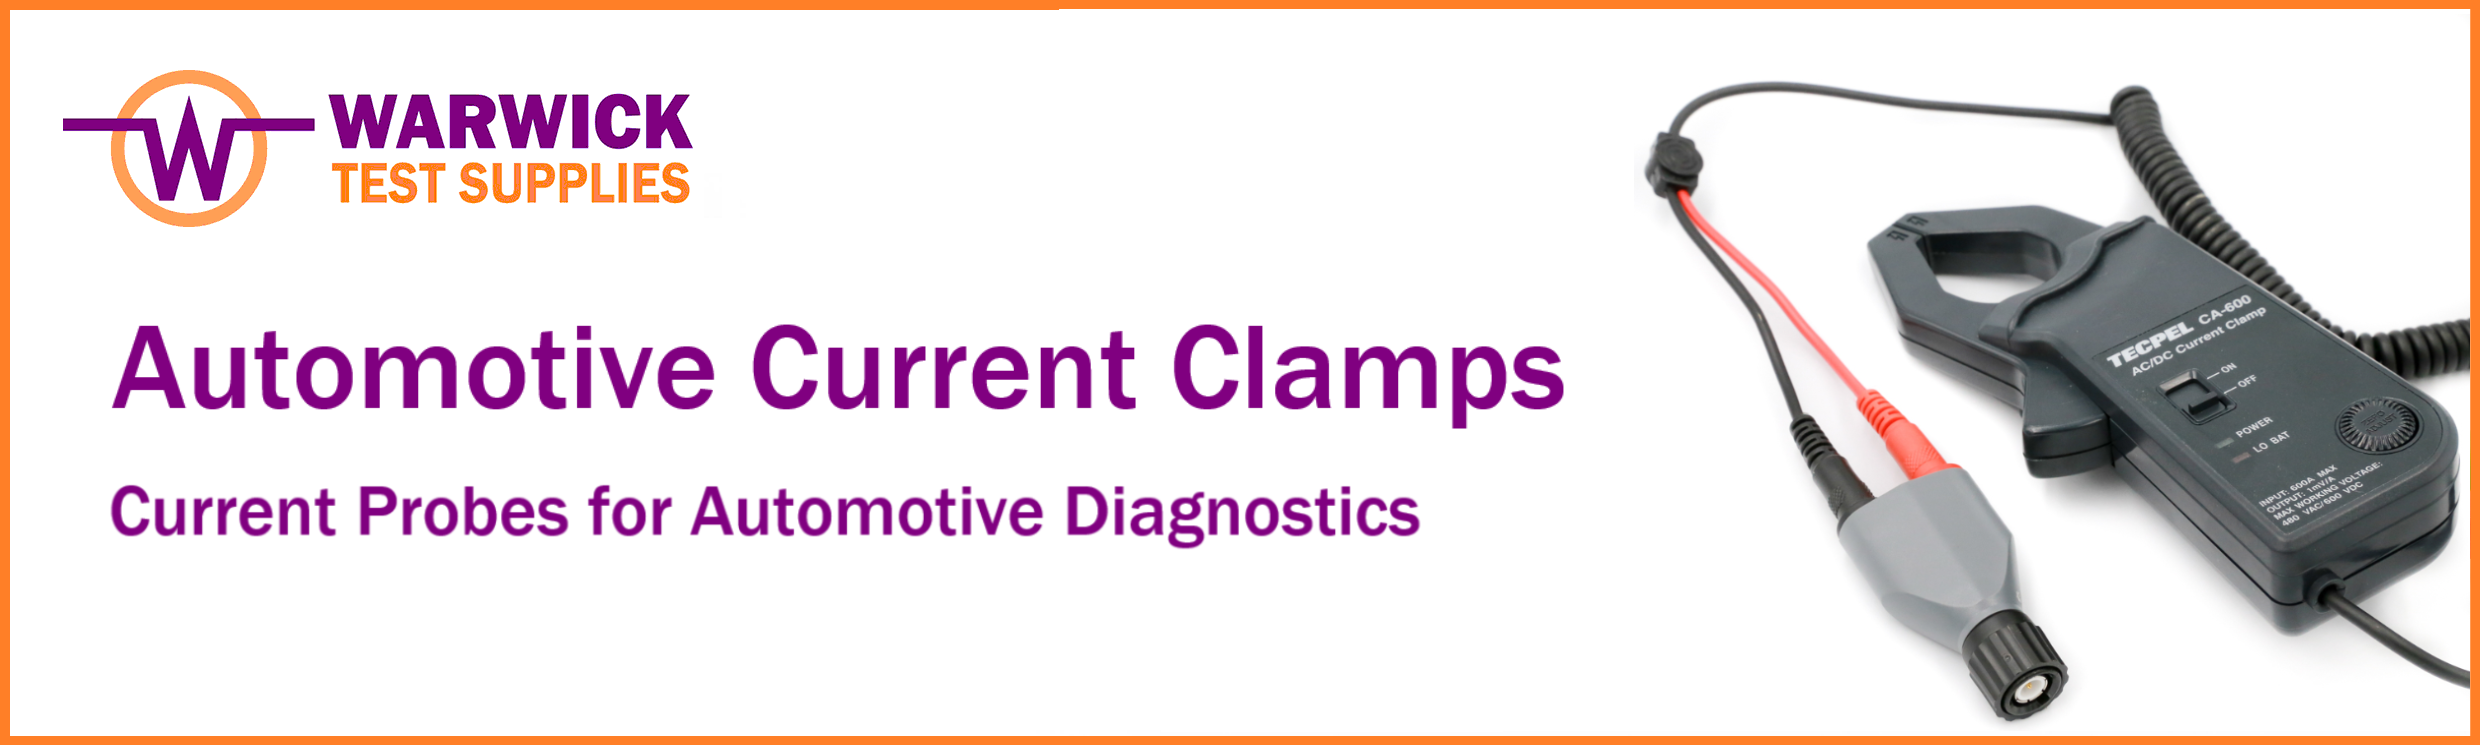 Guide to Automotive Current Clamps